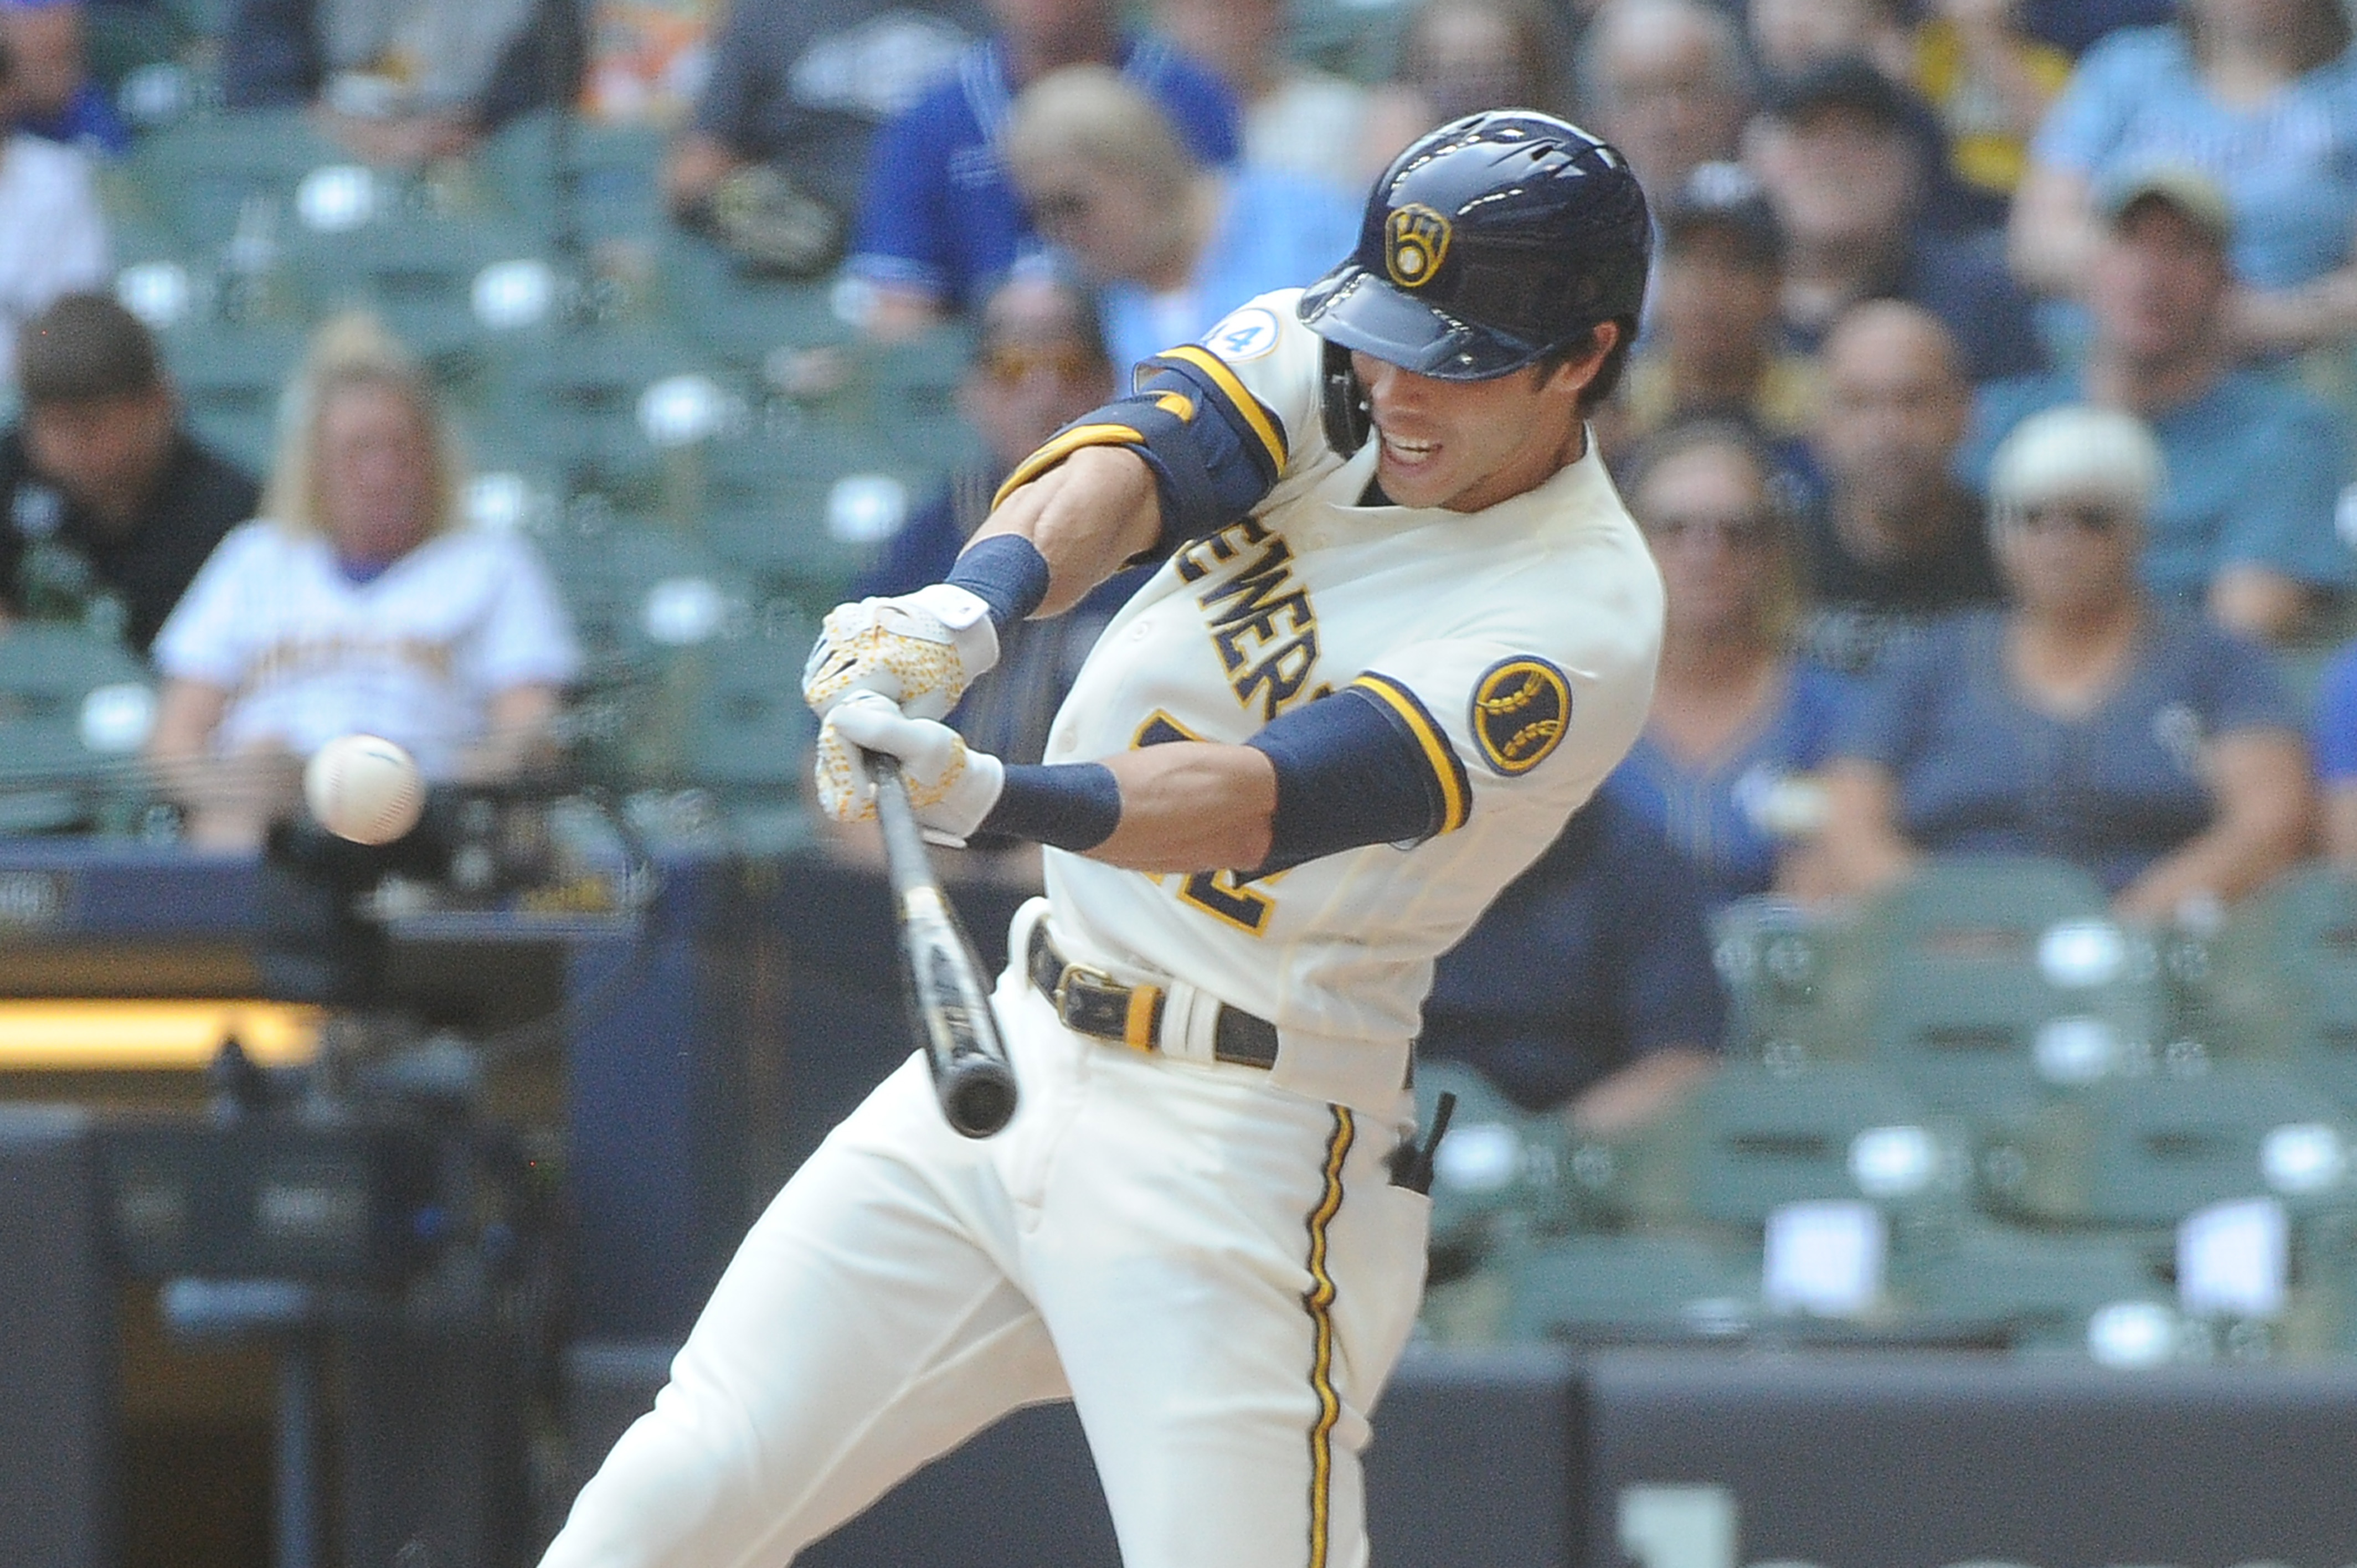 Milwaukee Brewers vs Chicago Cubs Prediction, 8/10/2021 MLB Pick, Tips and Odds